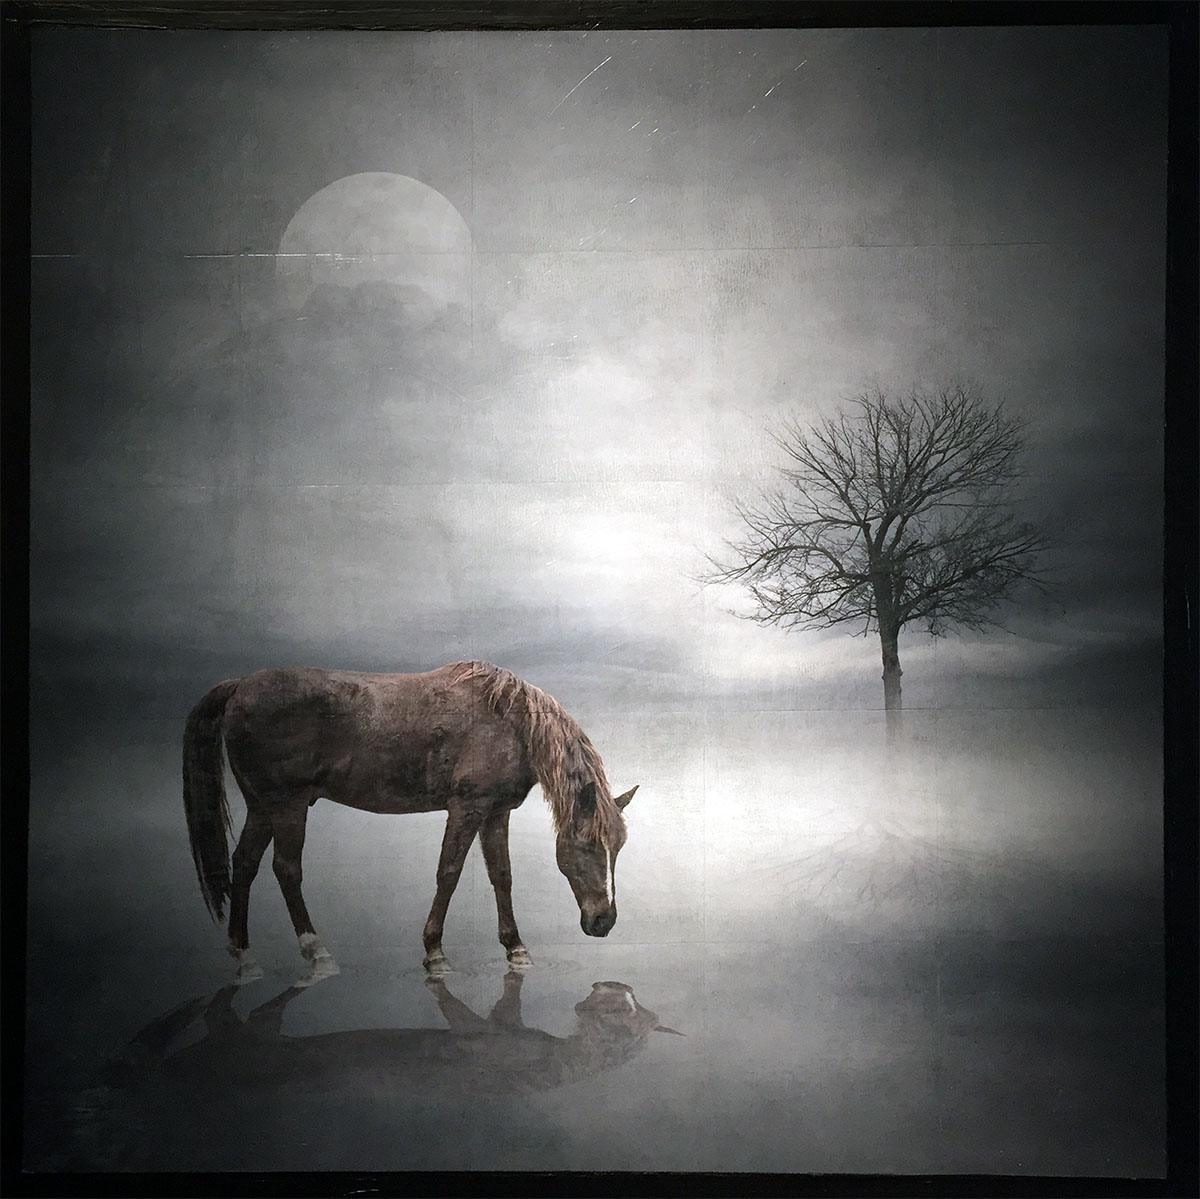 Equinemity gridded mixed media photograph on panel 30 x 30 inches GNO 147G